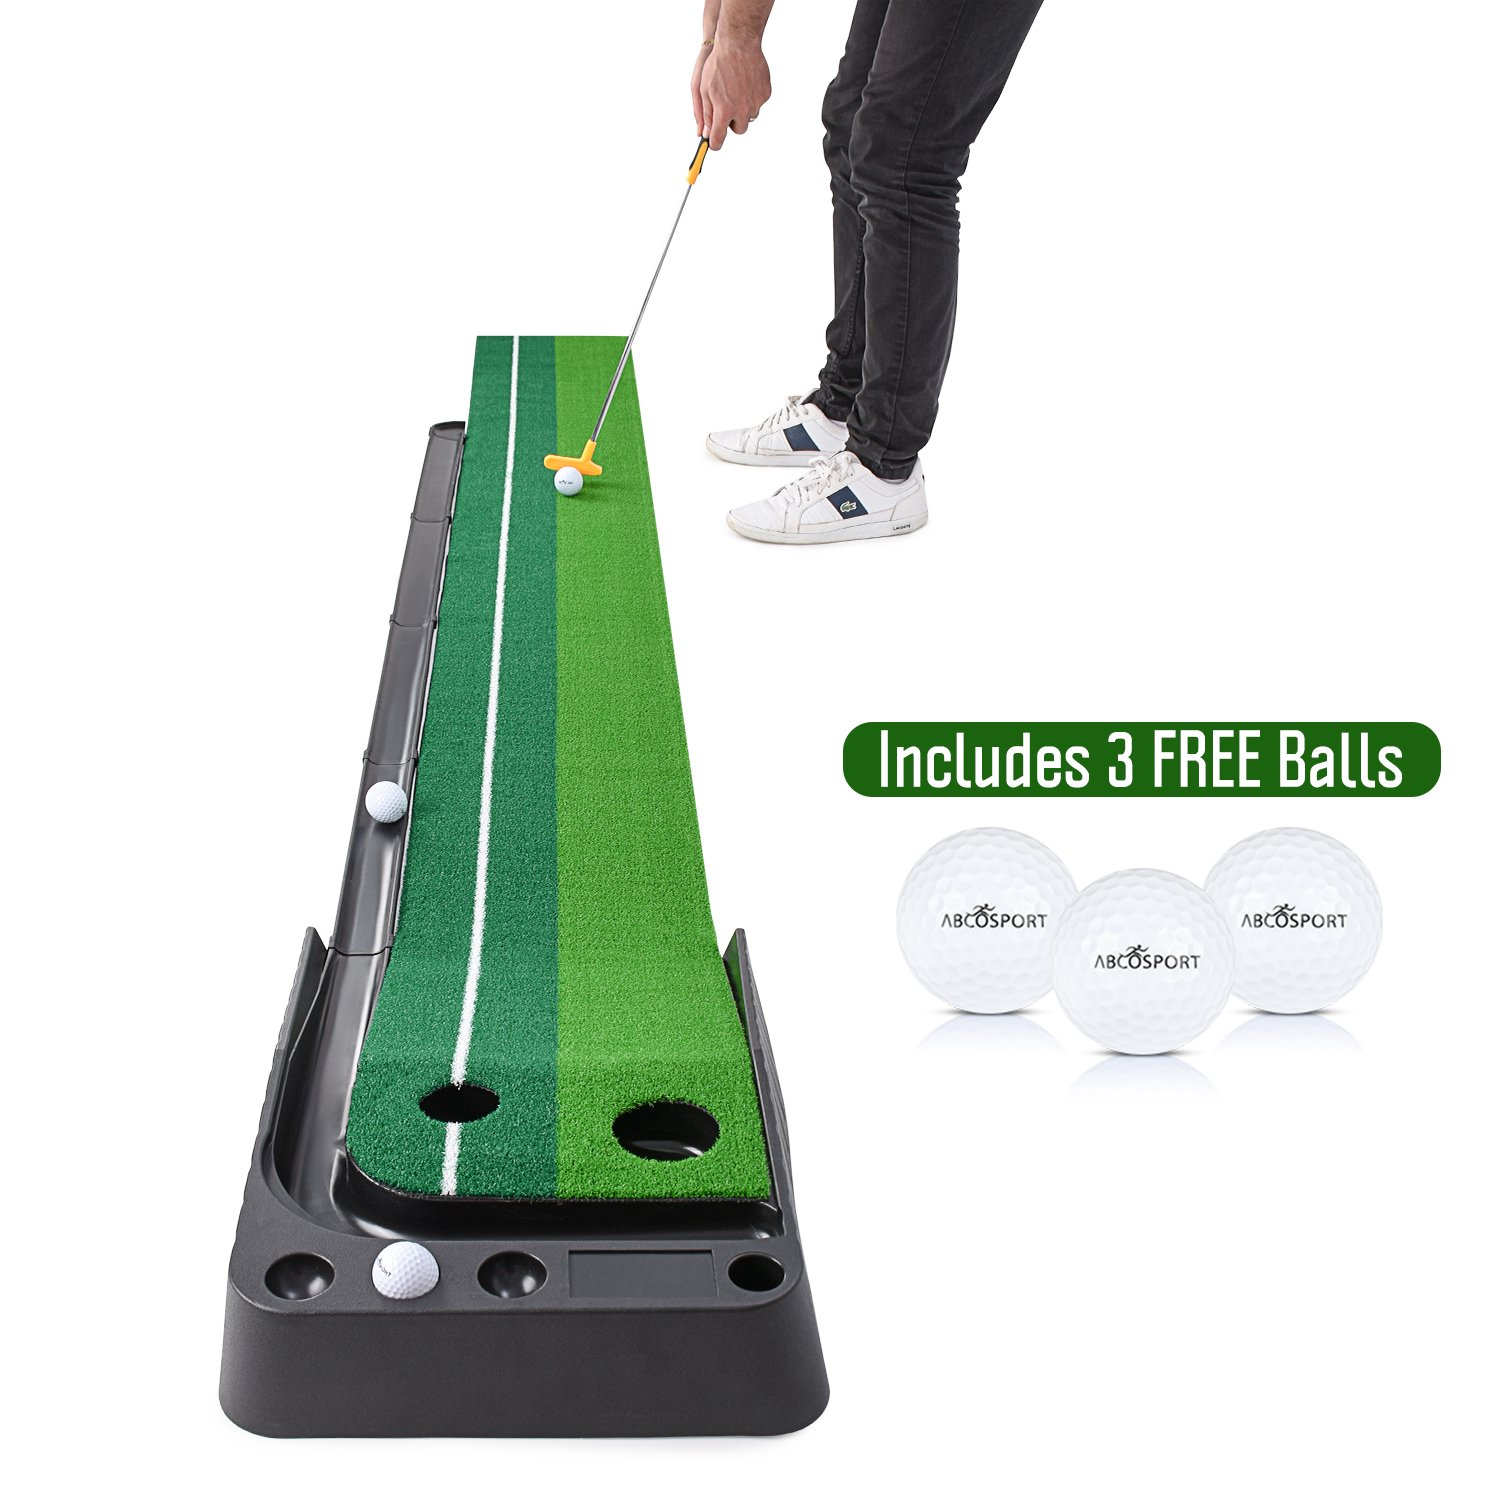 Abco Tech Indoor Golf Putting Green - Portable Mat with Auto Ball Return Function - Mini Golf Practice Training Aid, Game and Gift for Home, Office, Outdoor Use - 3 Bonus Balls by Abco Tech